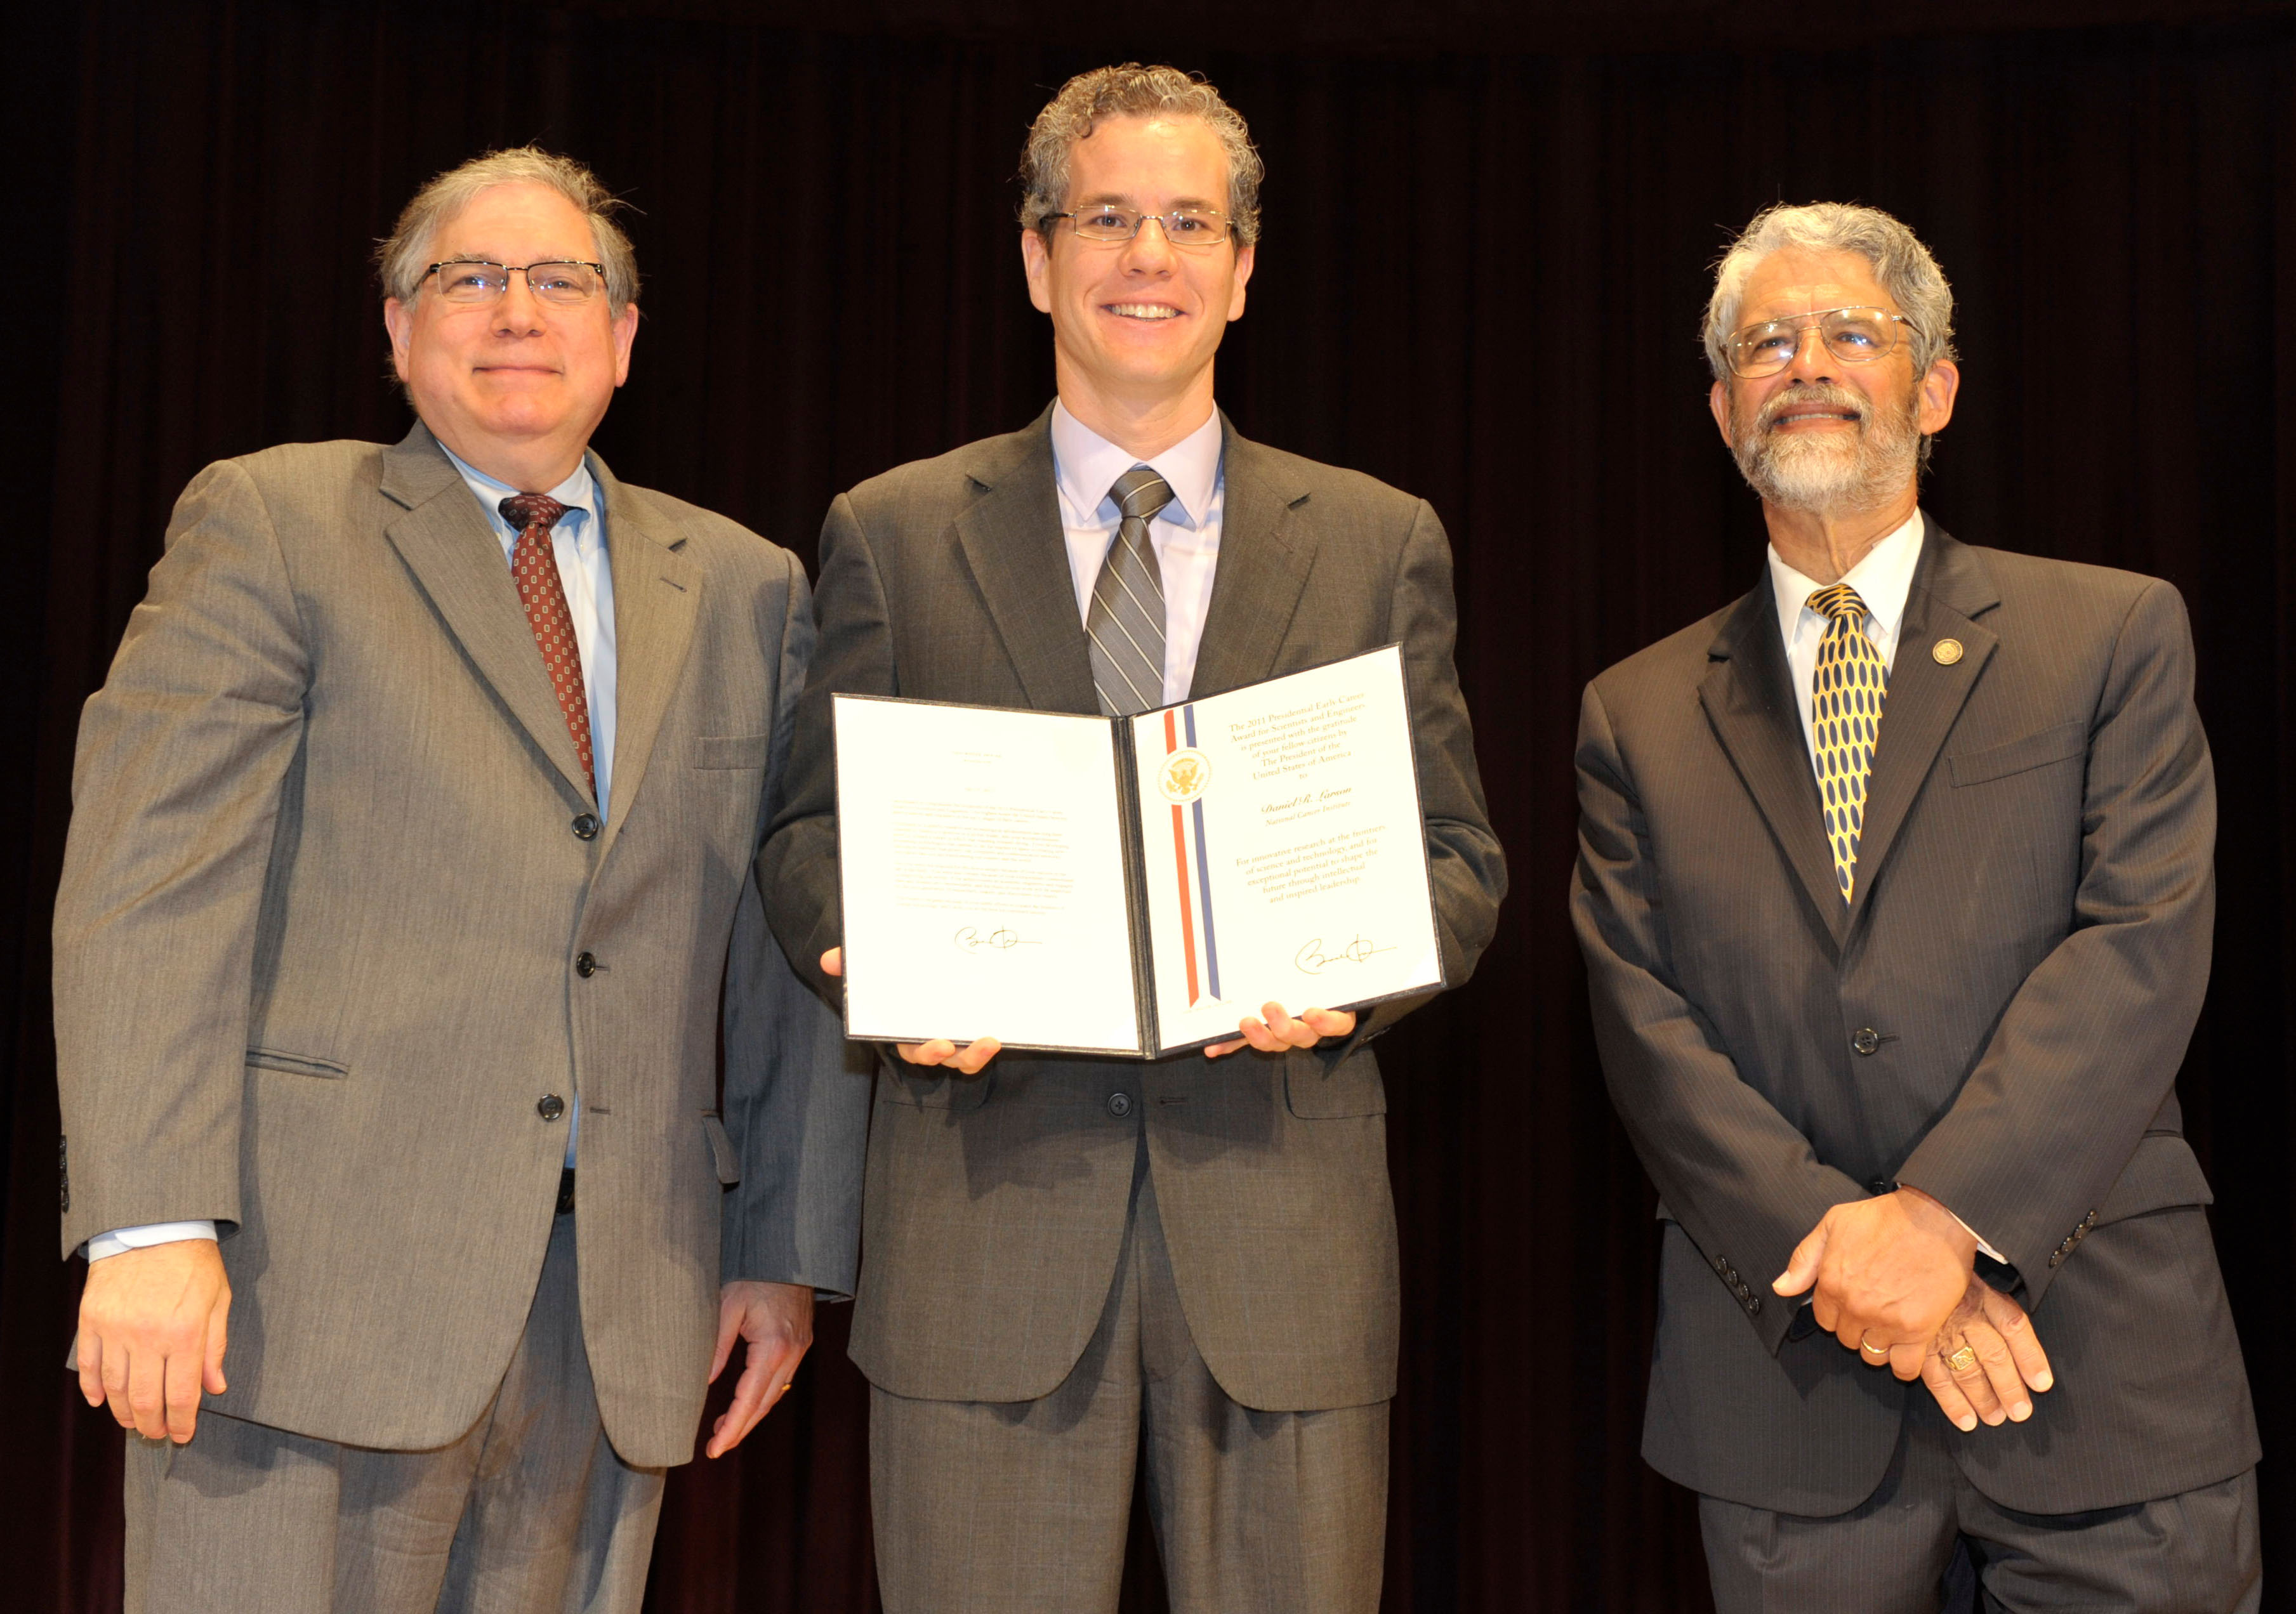 Dr. Larson stands between Dr. Tabak (left) and Dr. Holdren (right), while holding his award